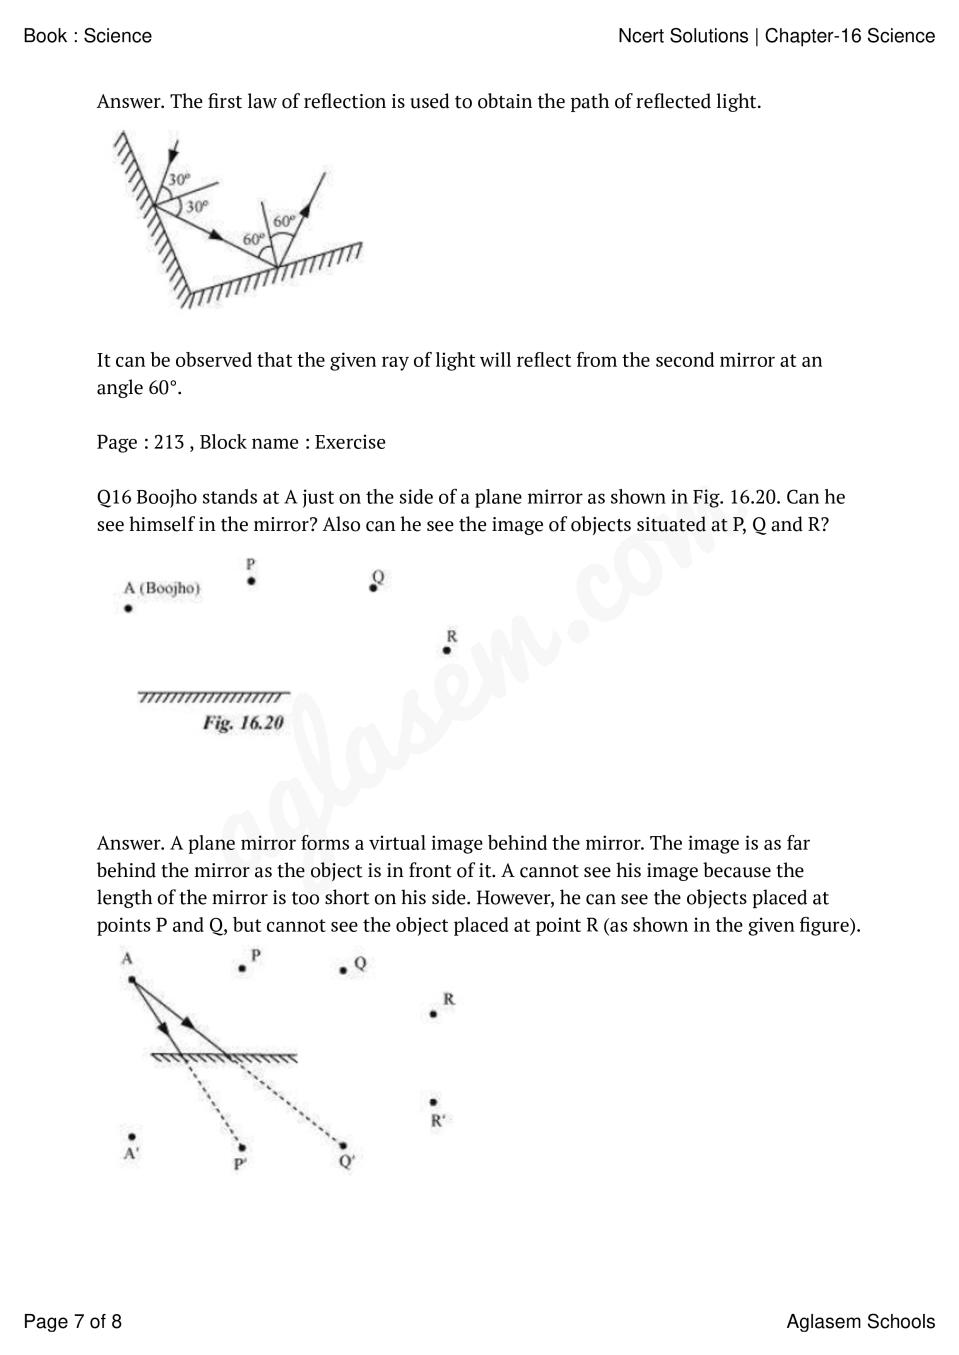 NCERT Solutions For Class 8 Science Chapter 16 Crop